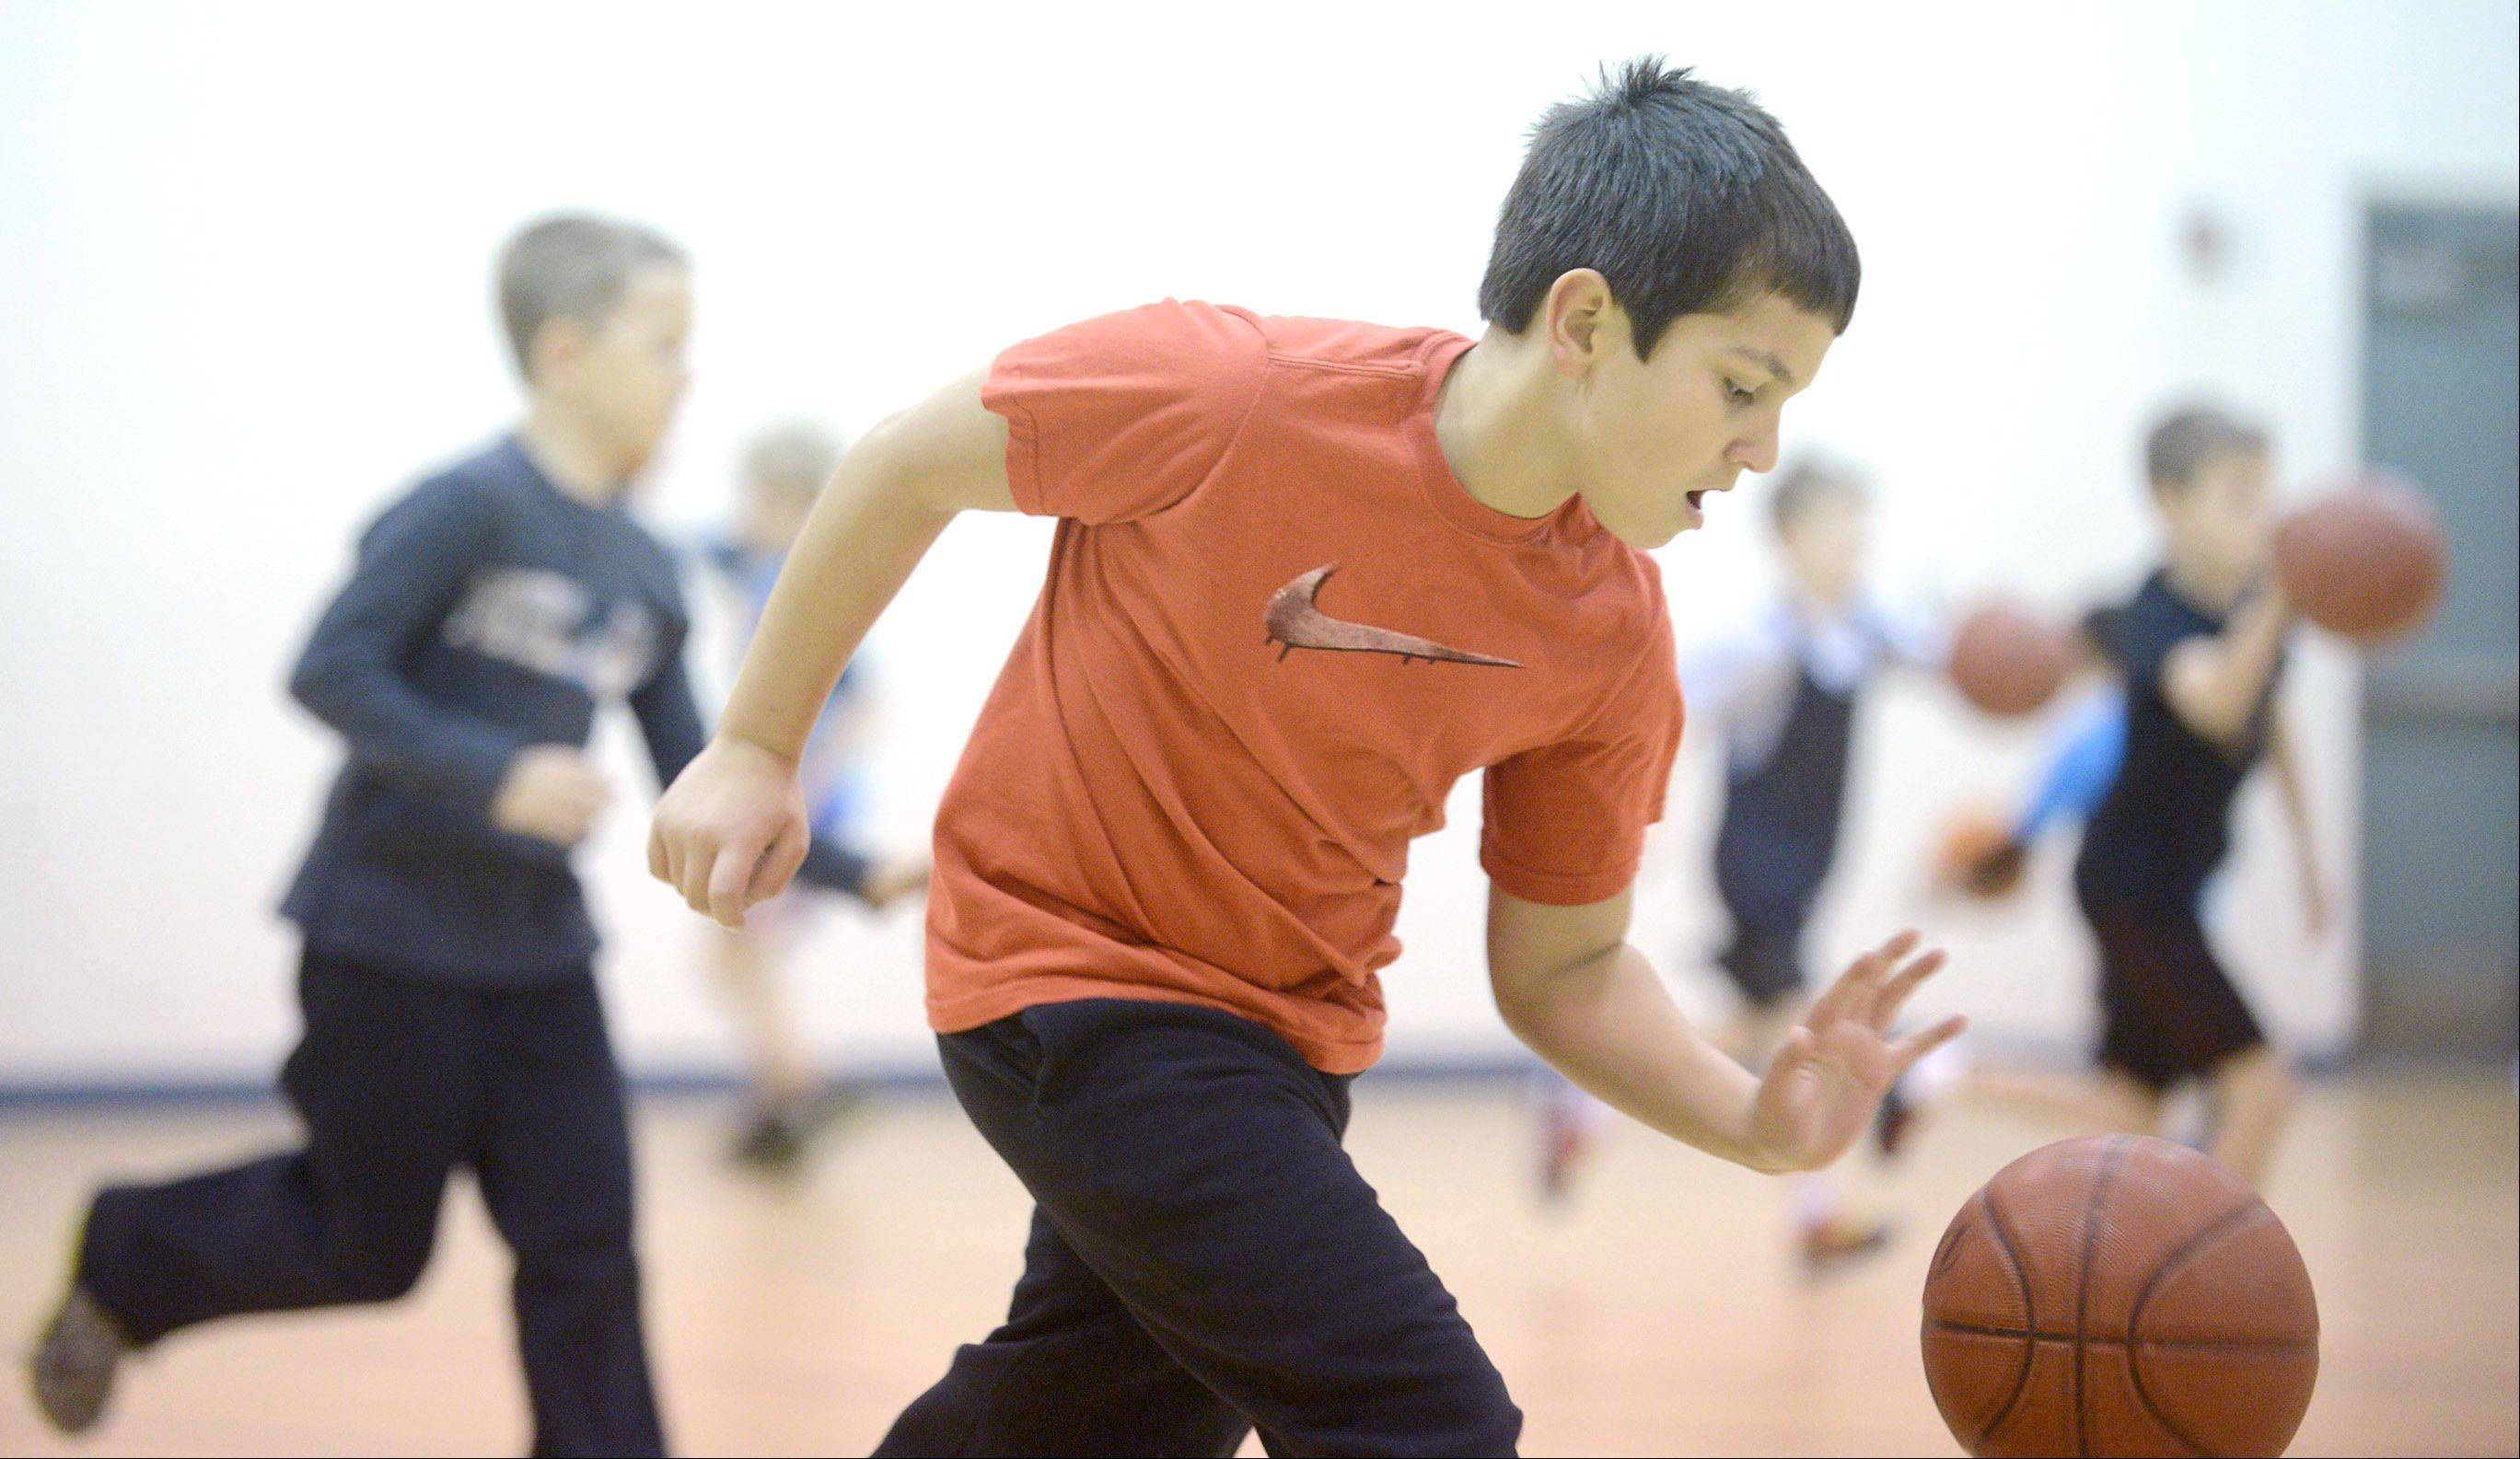 Maxx Garcia, 10, of Sugar Grove, races against fellow basketball campers during a dribbling drill at John Shields Elementary School in Sugar Grove on Thursday. The three-day park district camp, run by All Stars Sports Instruction, included basic mechanics with concentrations on shooting, ball handling, and passing.